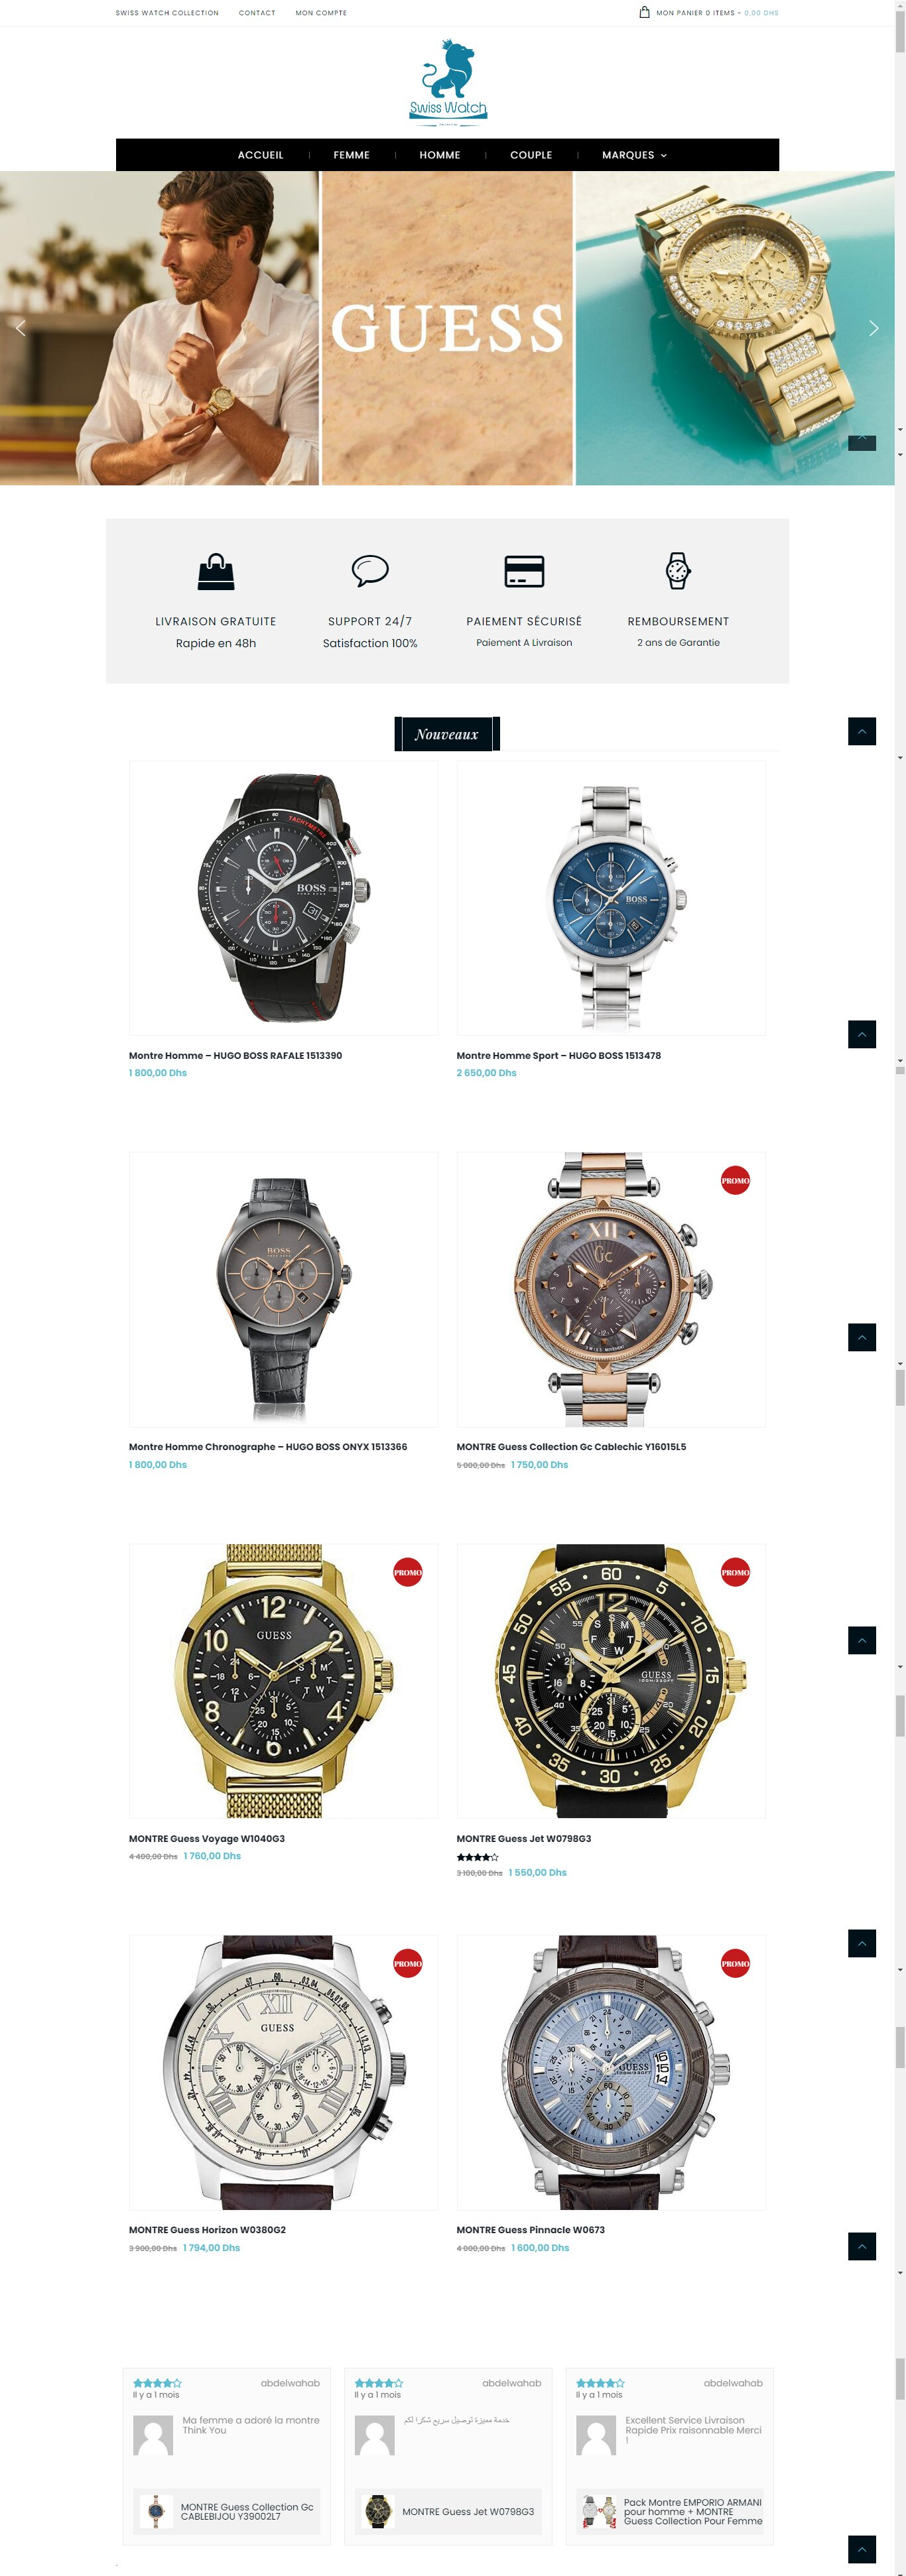 swiss watch collection